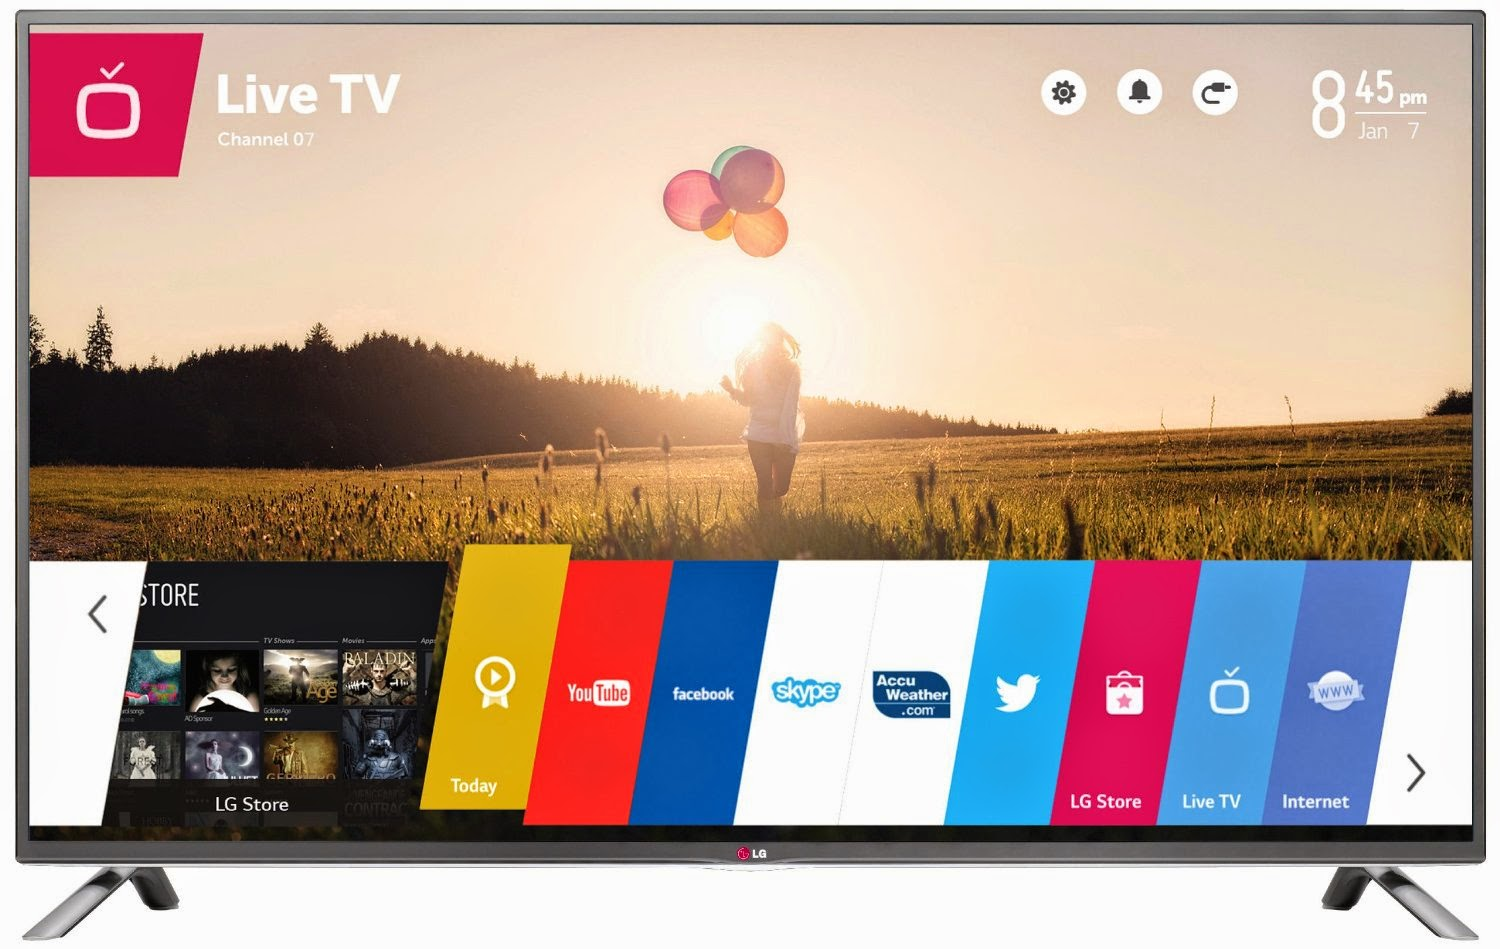 Spotify is available on LG Smart TVs - The Spotify Community